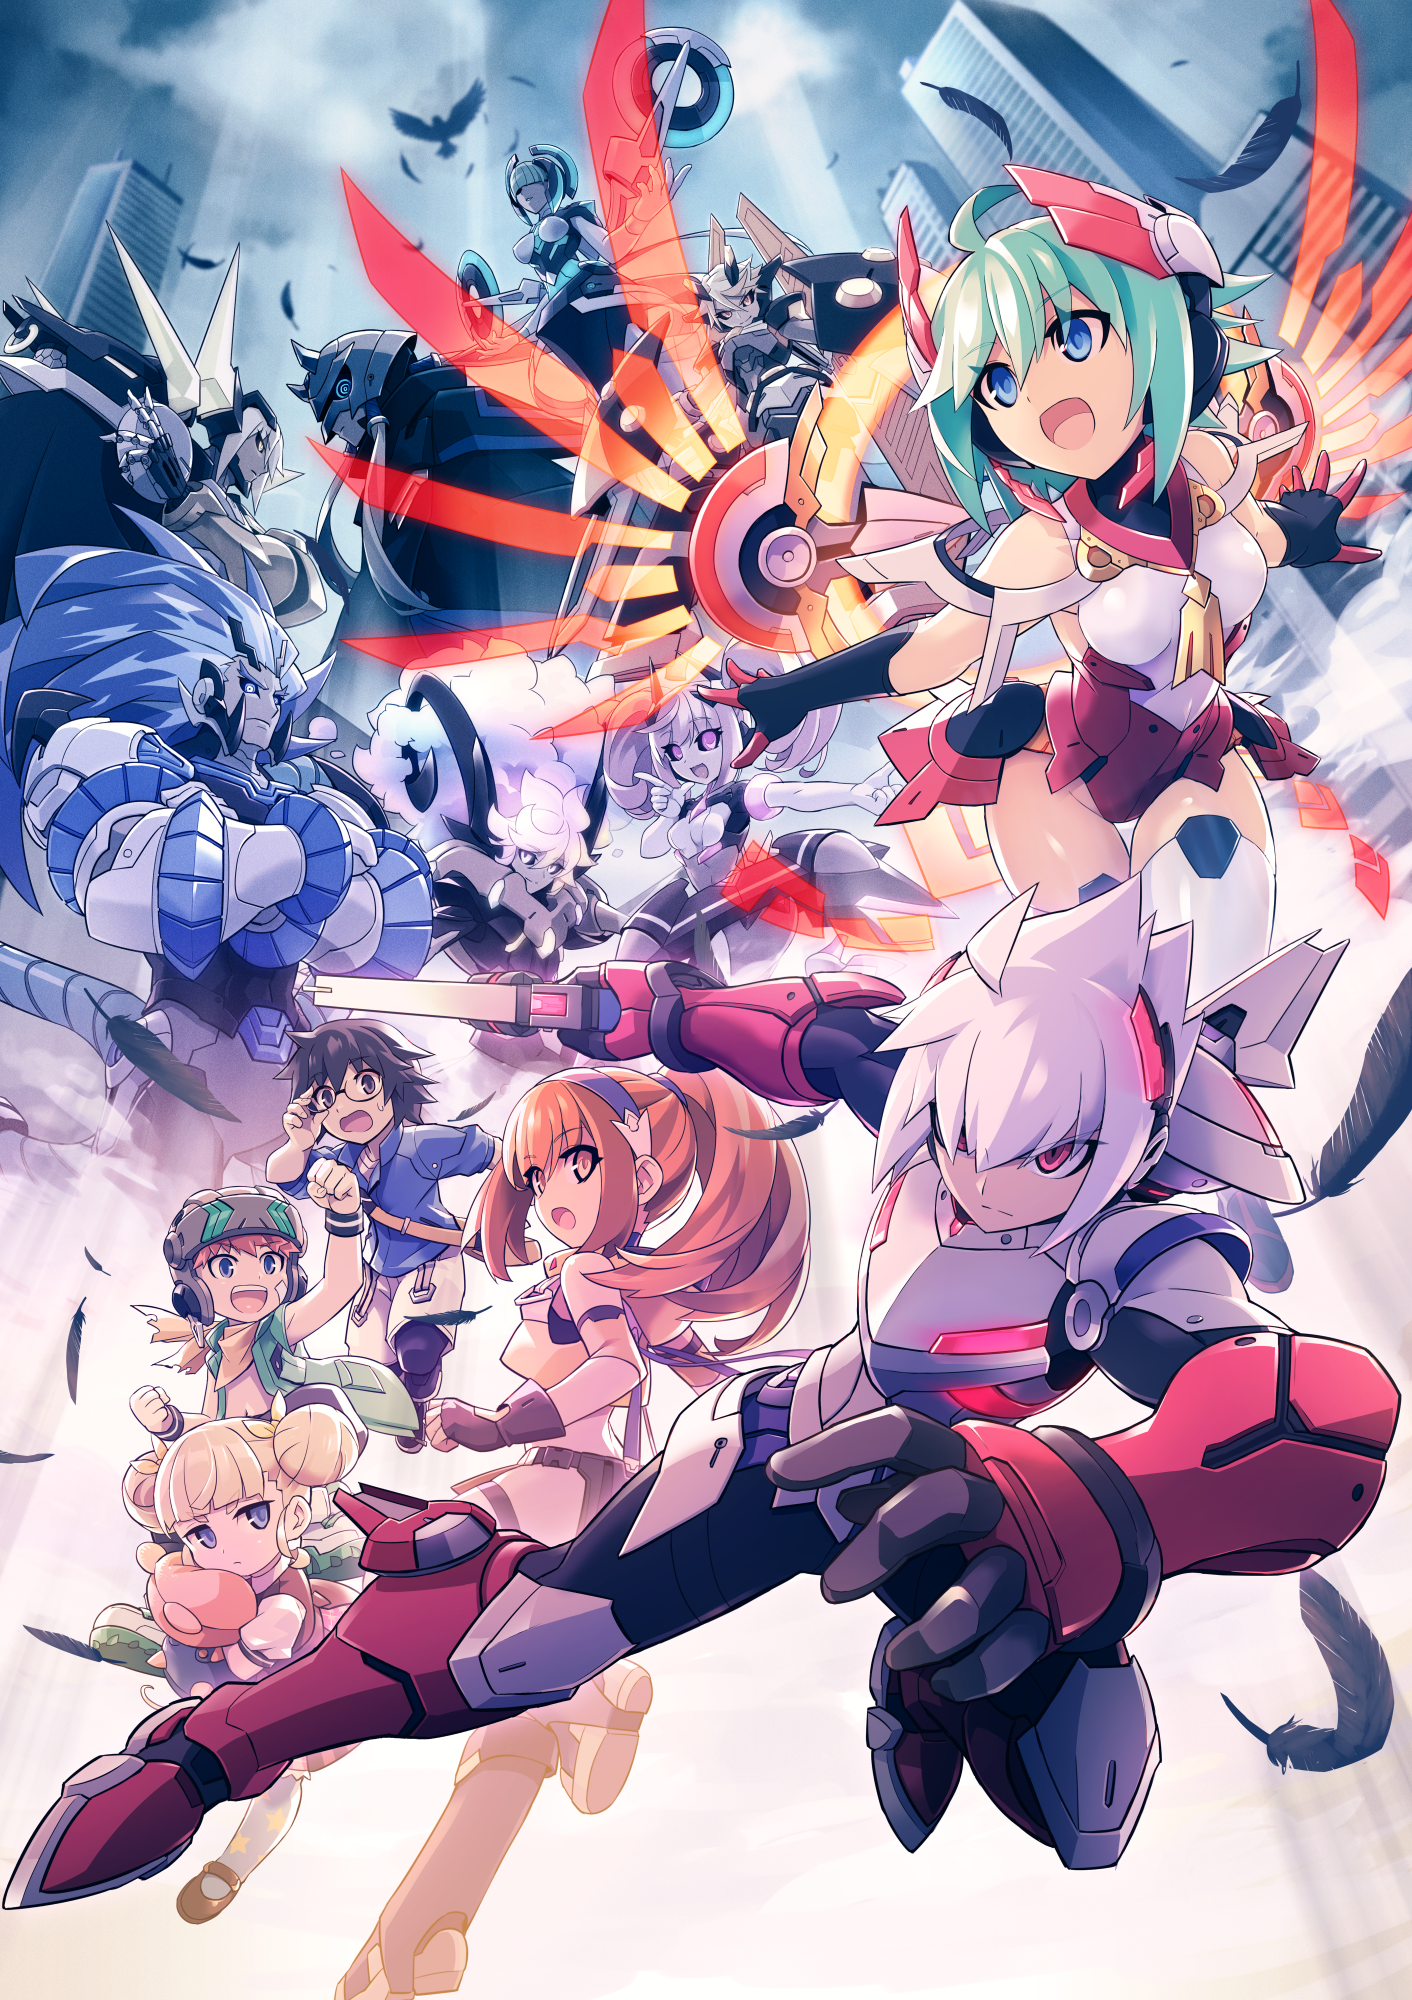 Cover Art - Luminous Avenger iX.png